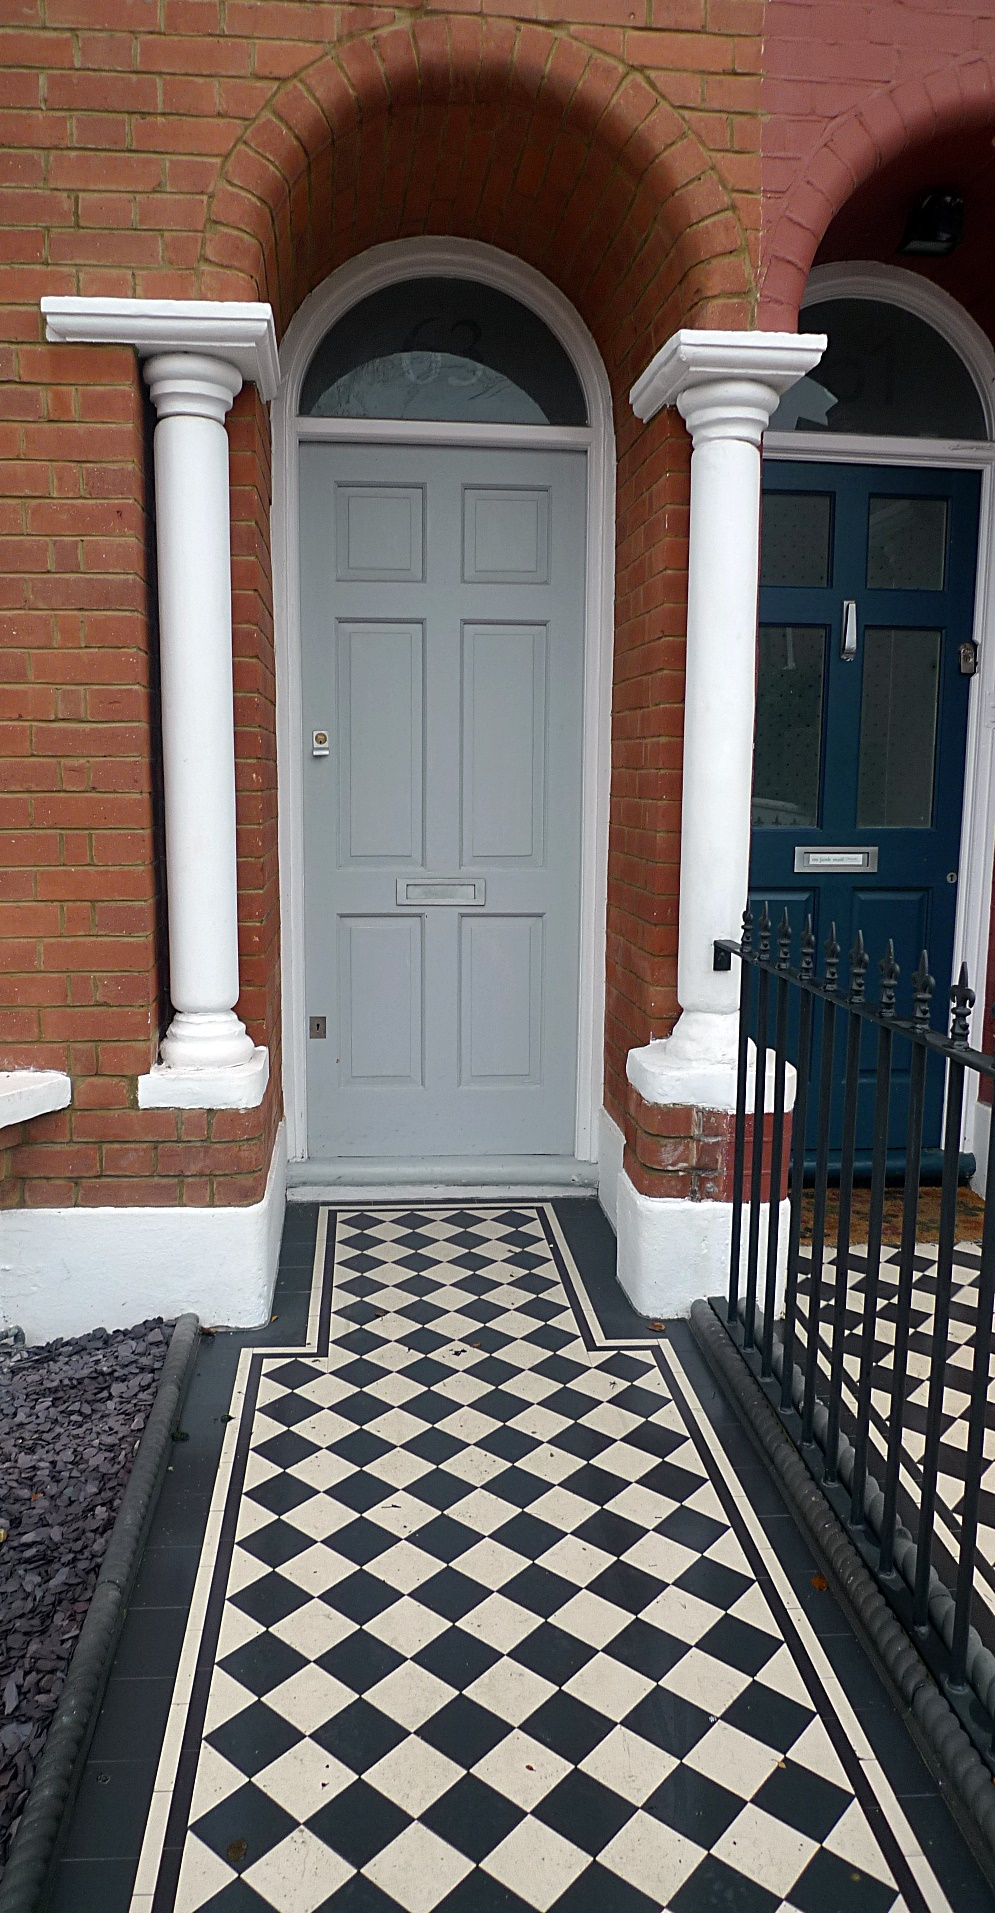 Ornamental stone black and white Victorian mosaic metal rail metal gate York stone entrance stone charcoal rope edge tiles Balham Streatham Clapham West Norwood Battersea London